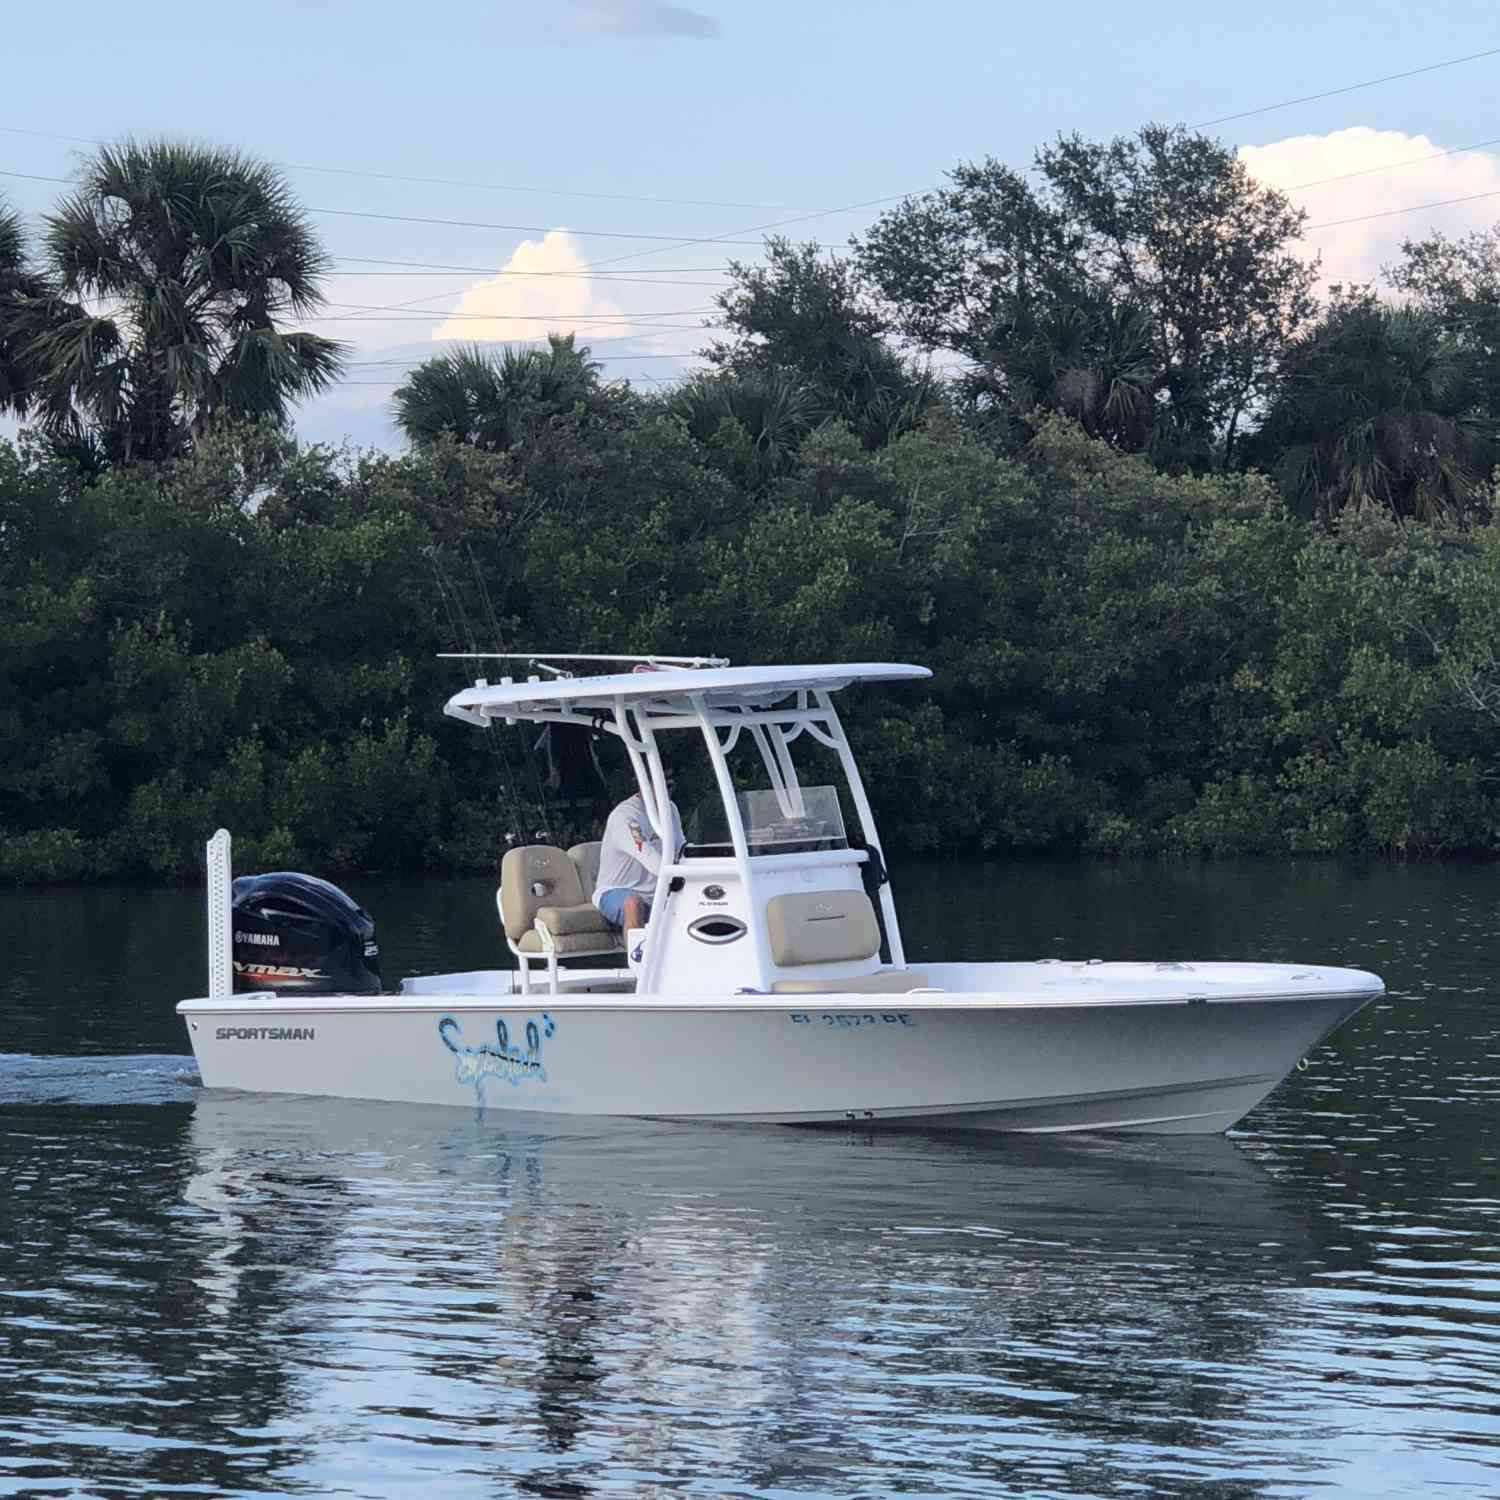 Title: Spooled - On board their Sportsman Open 282 Center Console - Location: New Smyrna Beach,FL. Participating in the Photo Contest #SportsmanFebruary2019